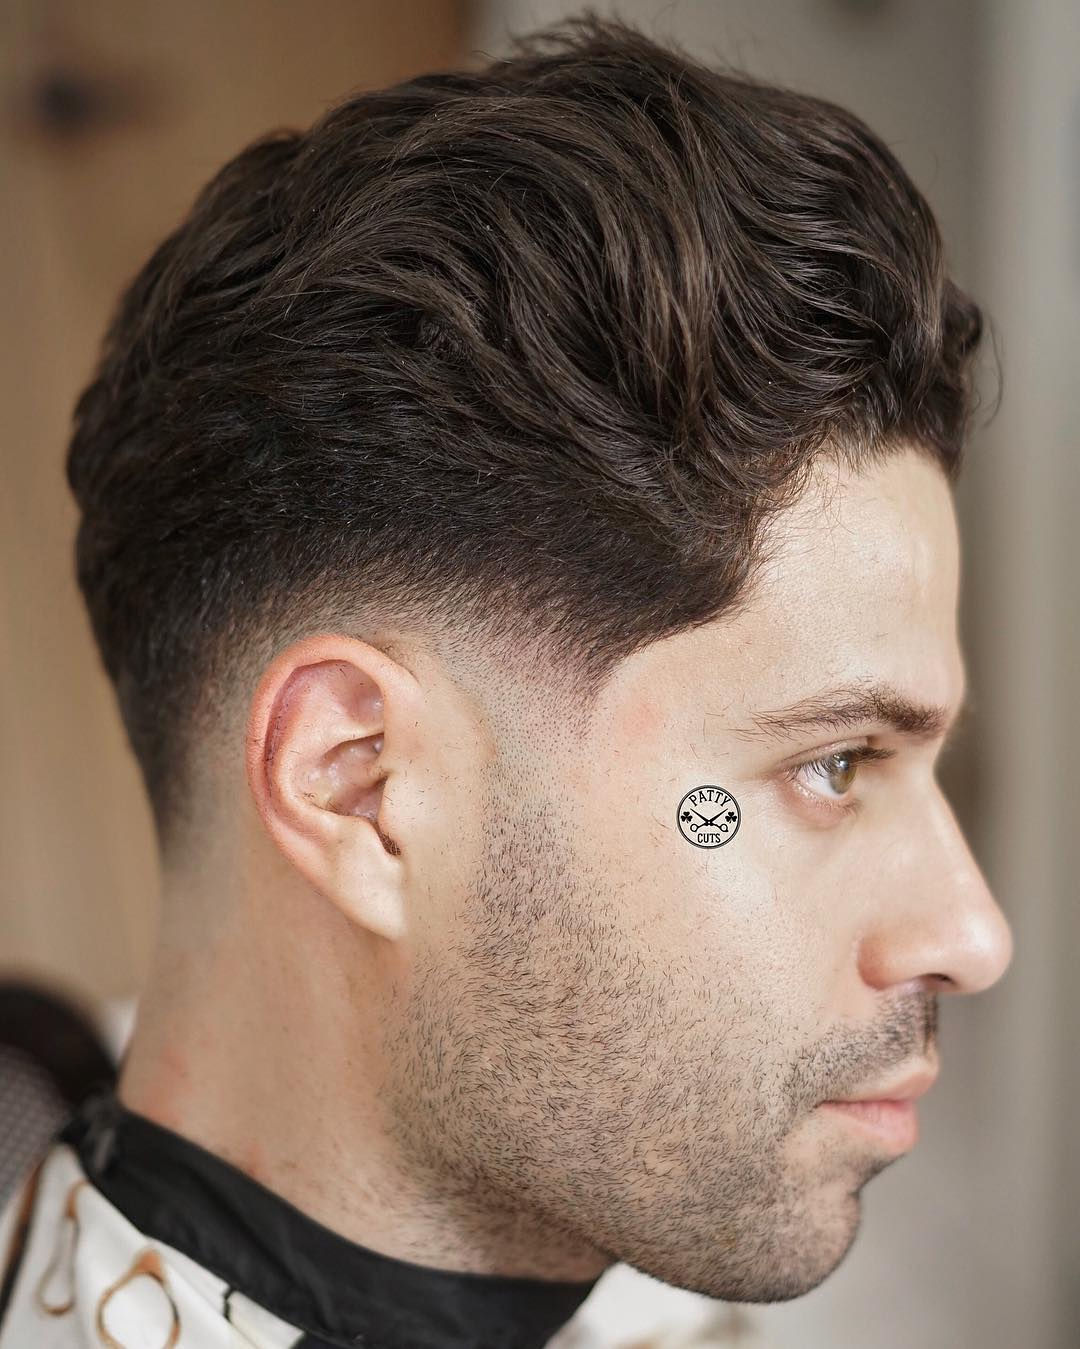 patty_cuts low fade haircut and medium mens hairstyle